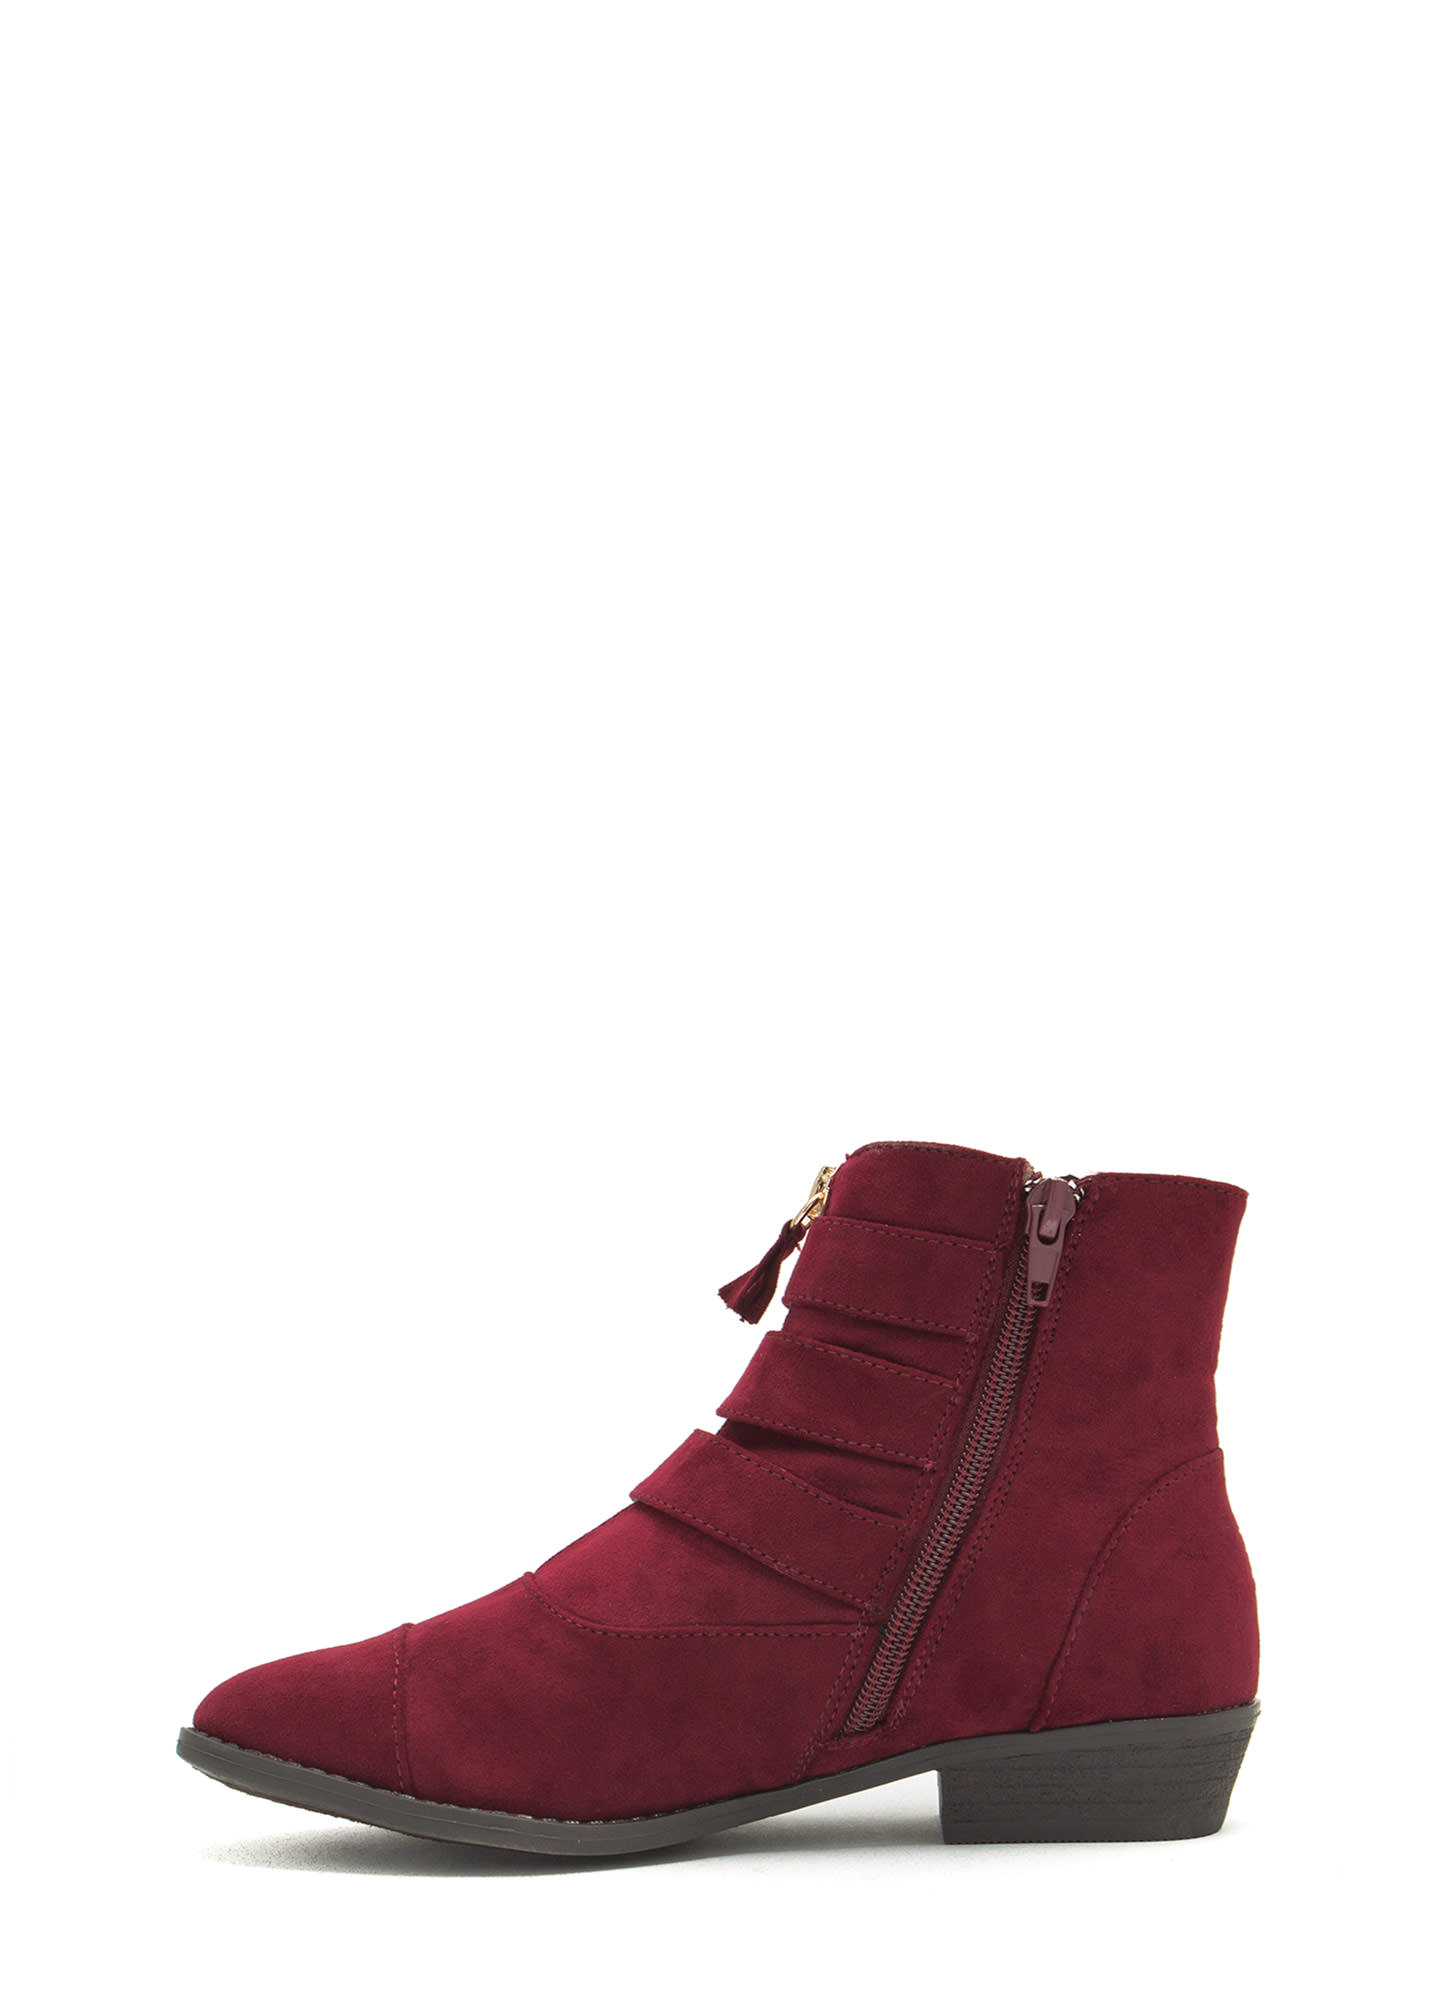 Tri-Buckle 'N Zip Booties OXBLOOD